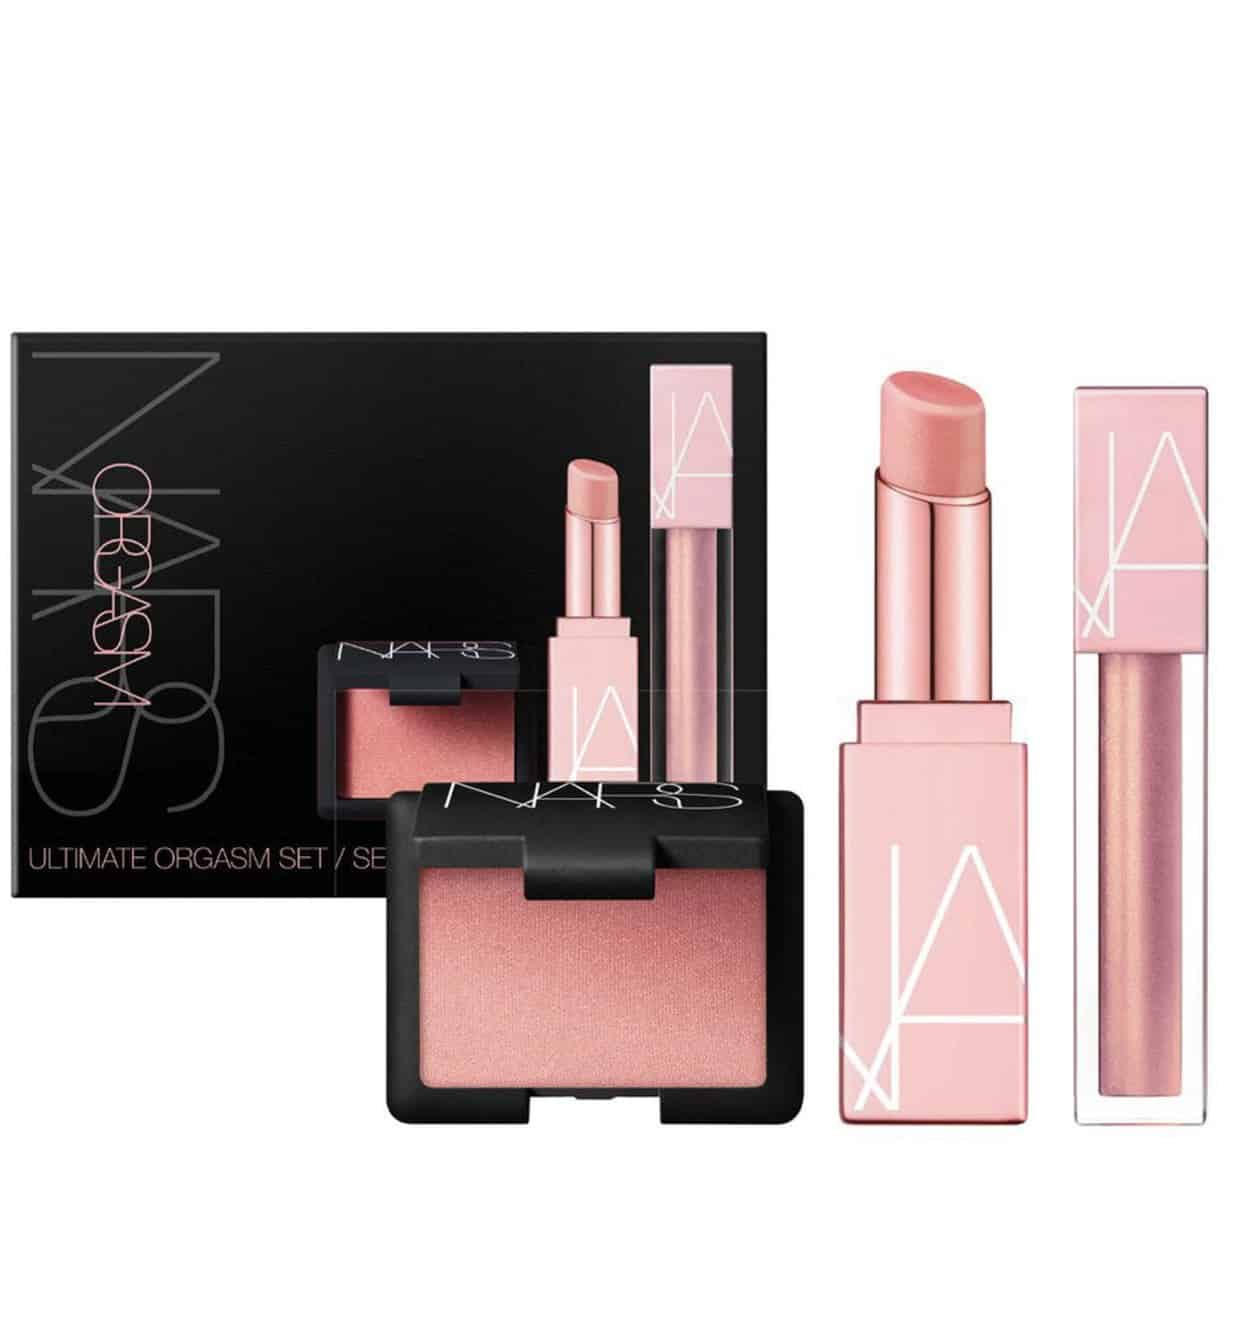 NARS Ultimate Orgasm Set